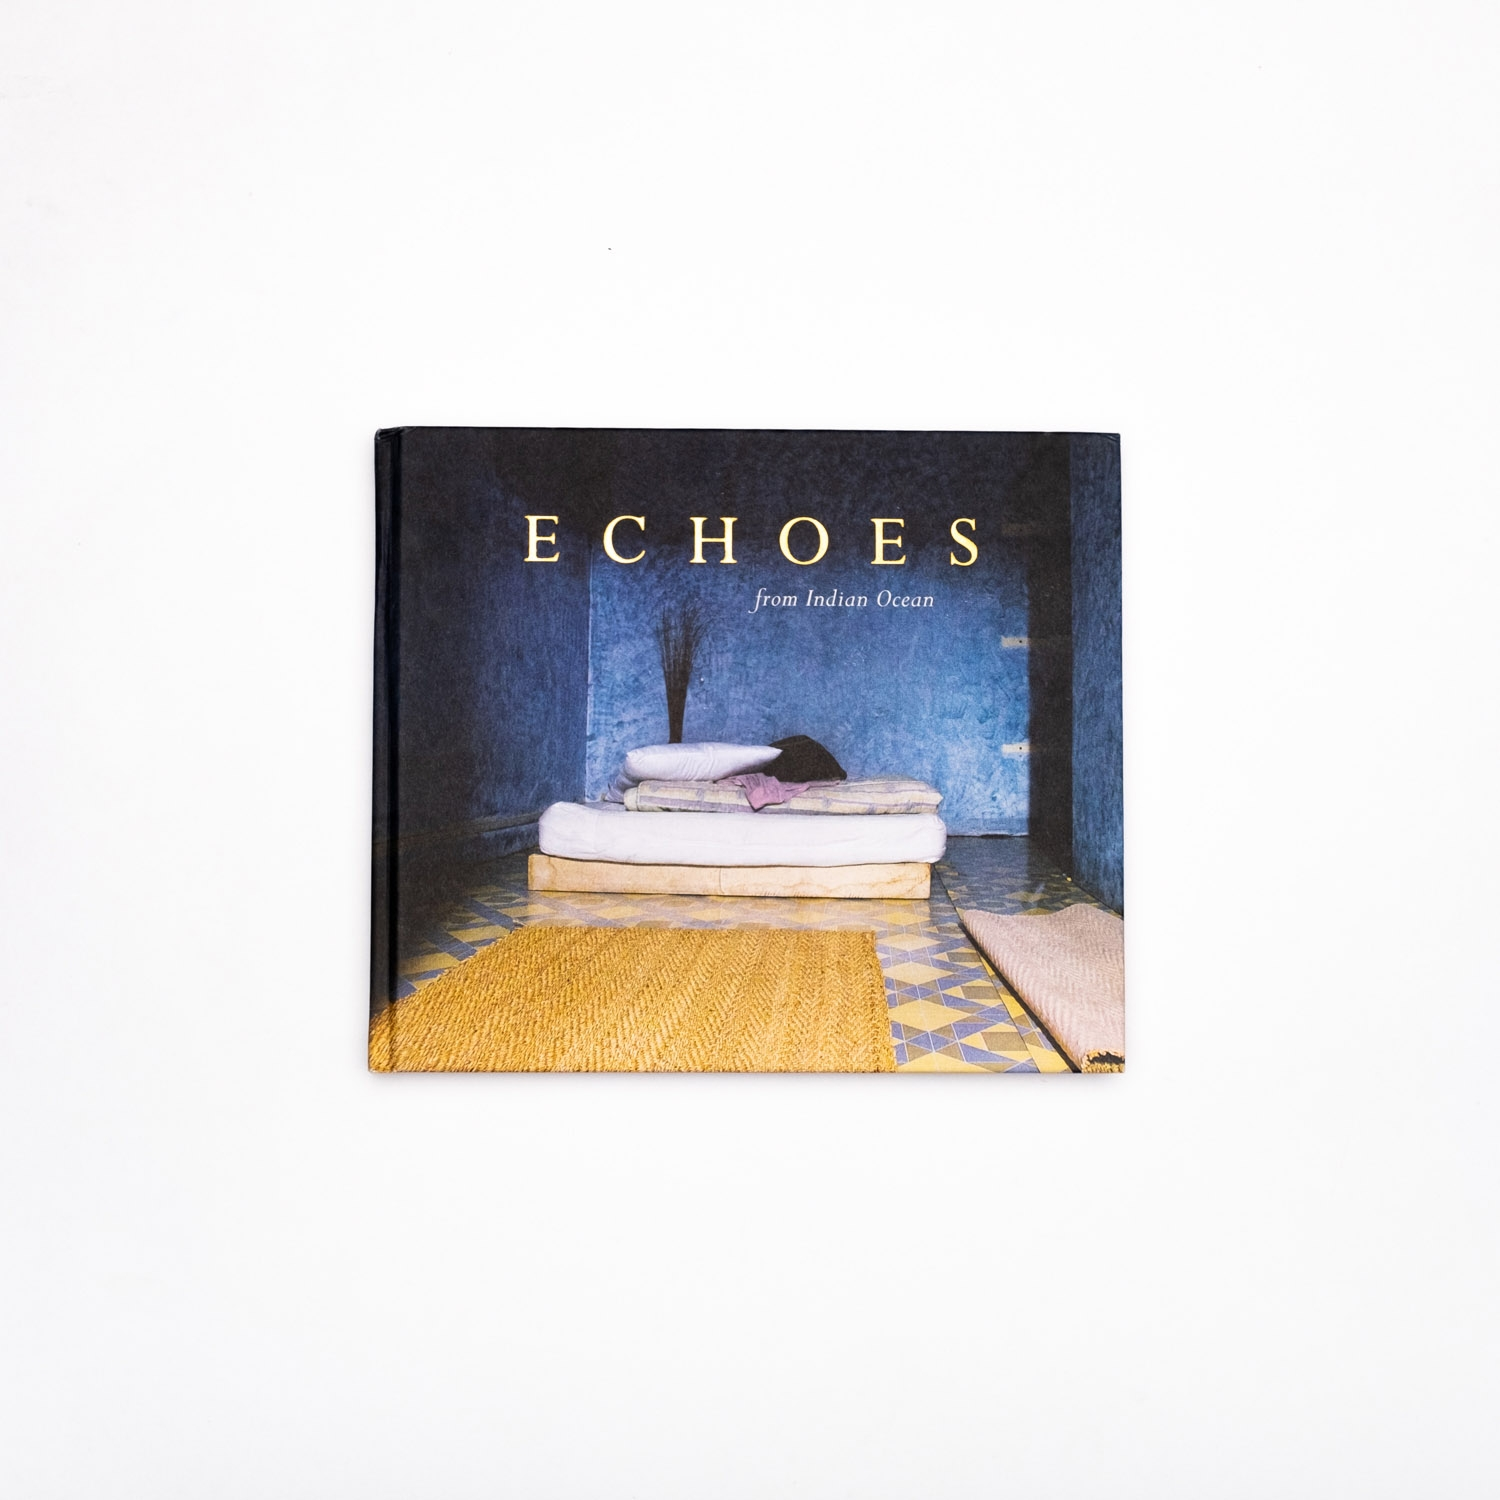 Echoes (from Indian Ocean)